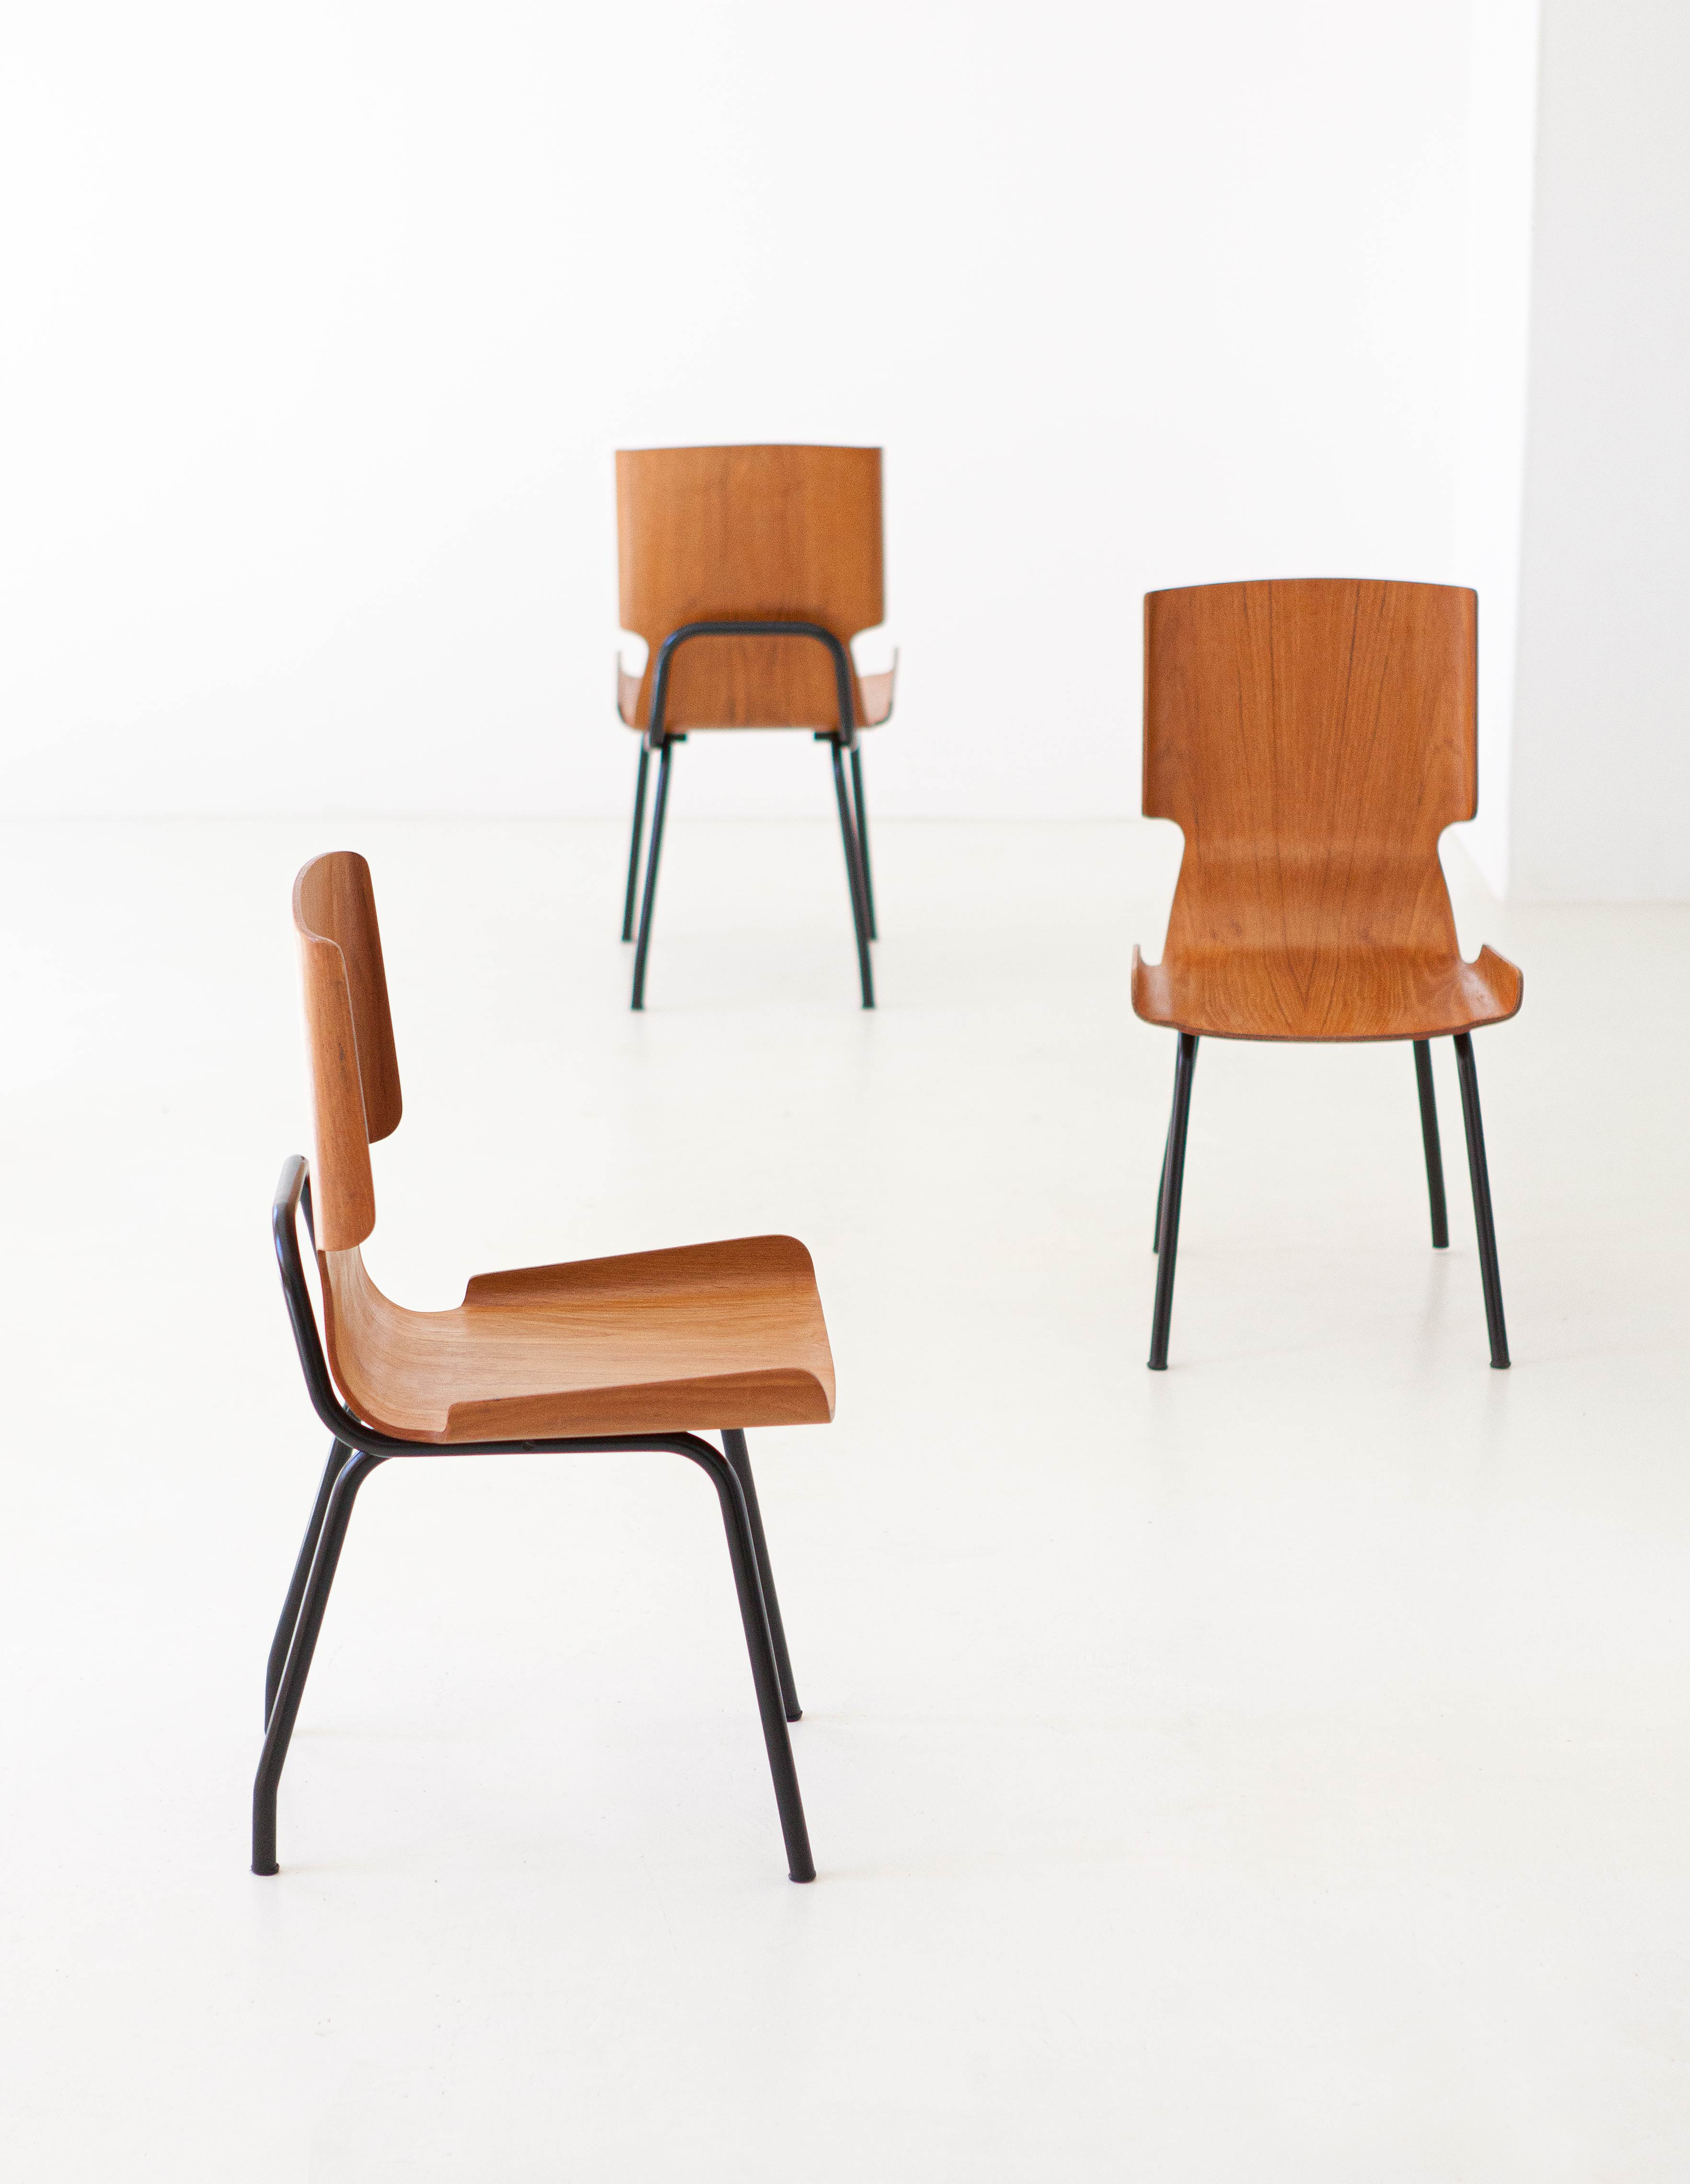 1950s-set-of-six-curved-teak-chairs-by-carlo-ratti-6-se311